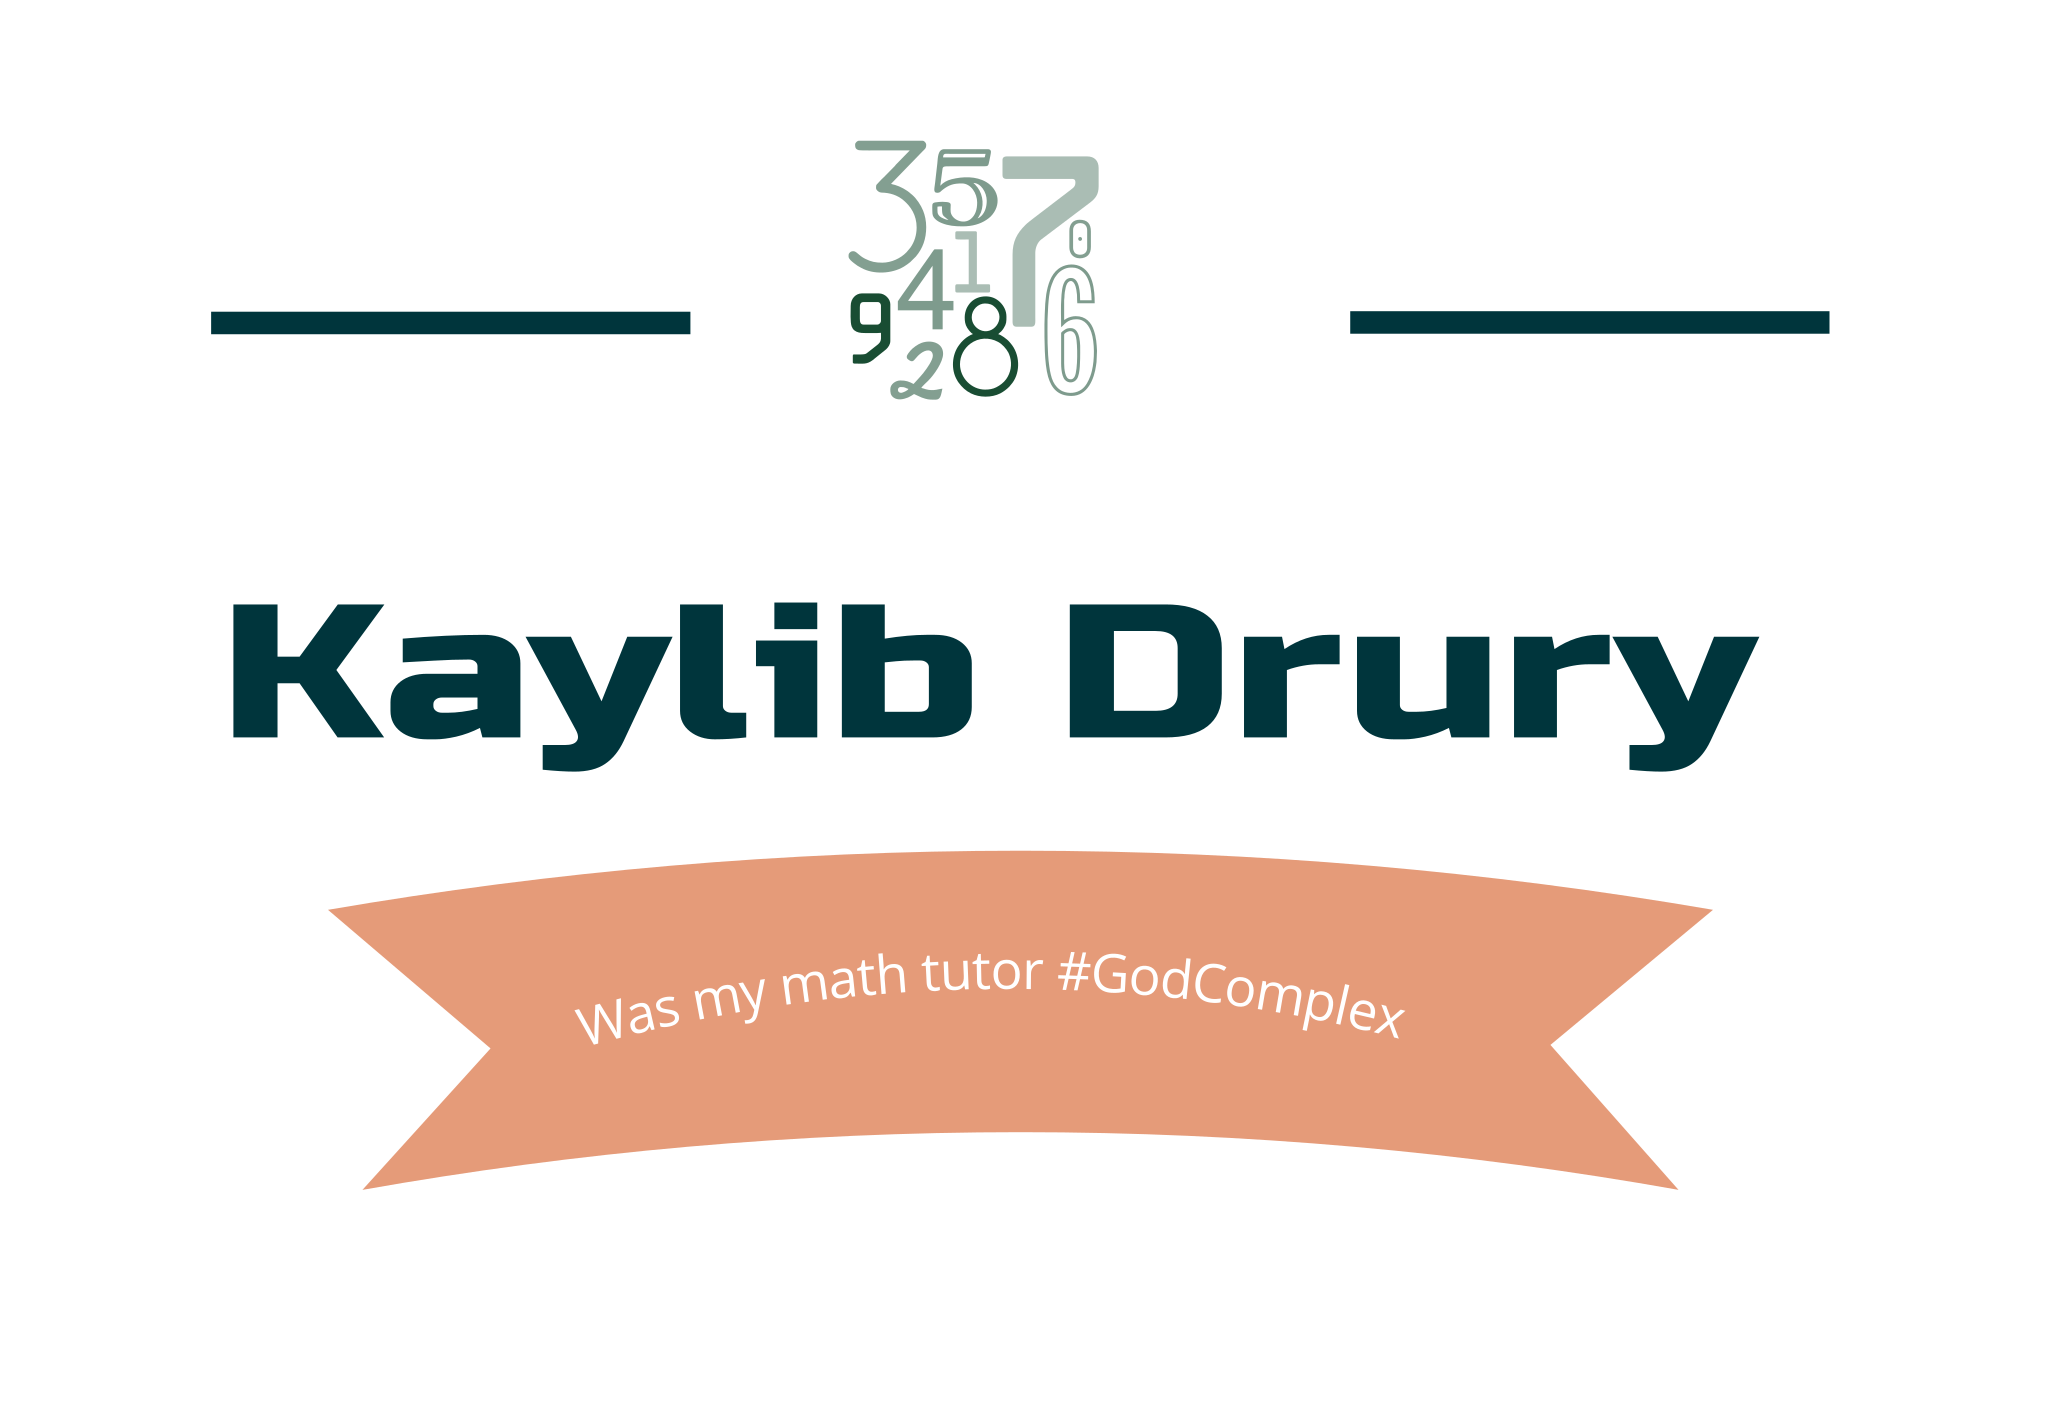 Kaylib Drury to people